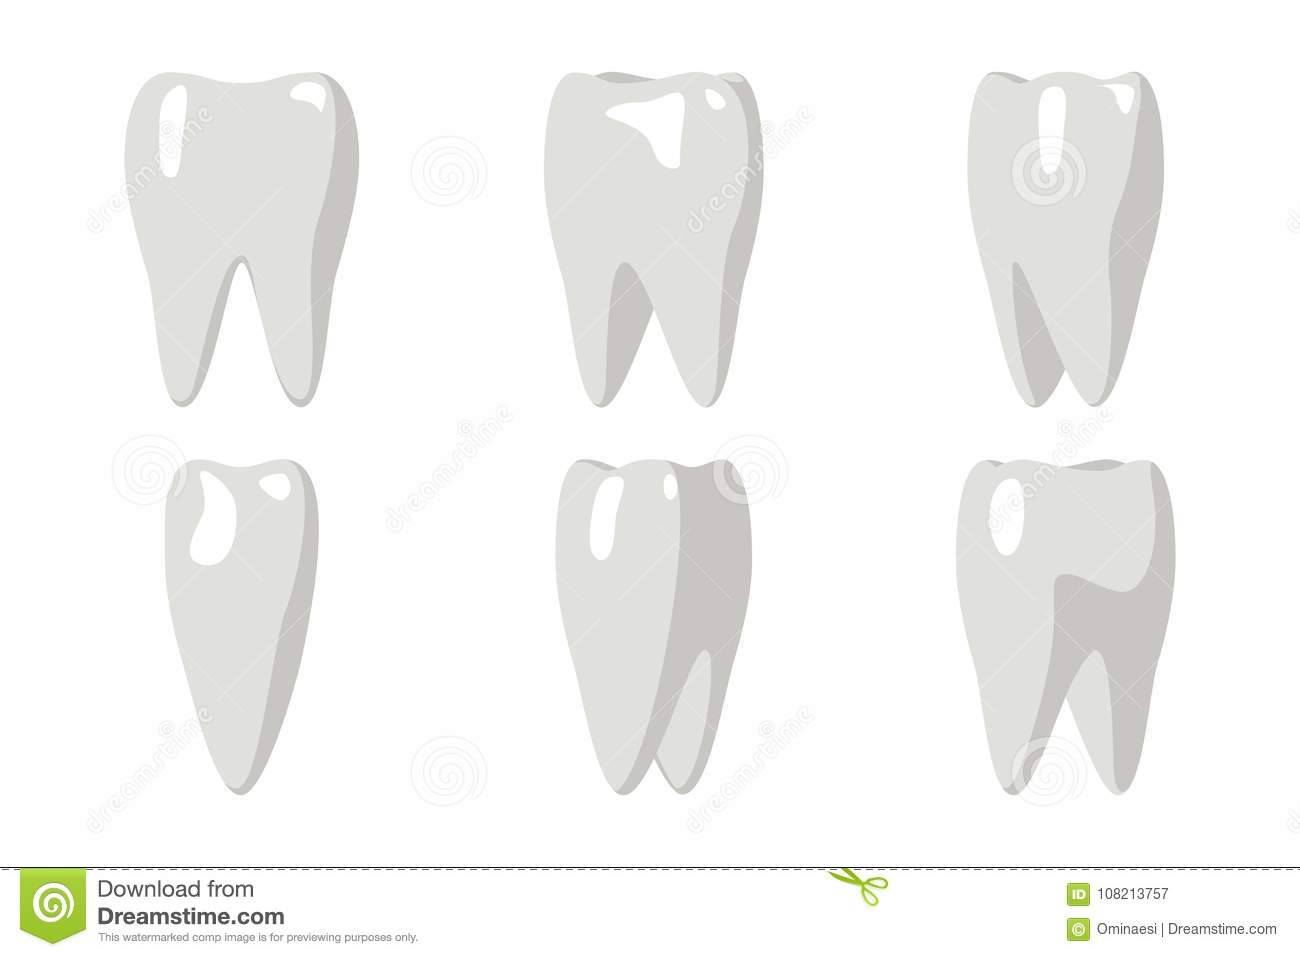 Download Cartoon Tooth Rotation Animation Frames 3d Stomatology Dental Poster Flat Design Isolated Icon Template Transperent